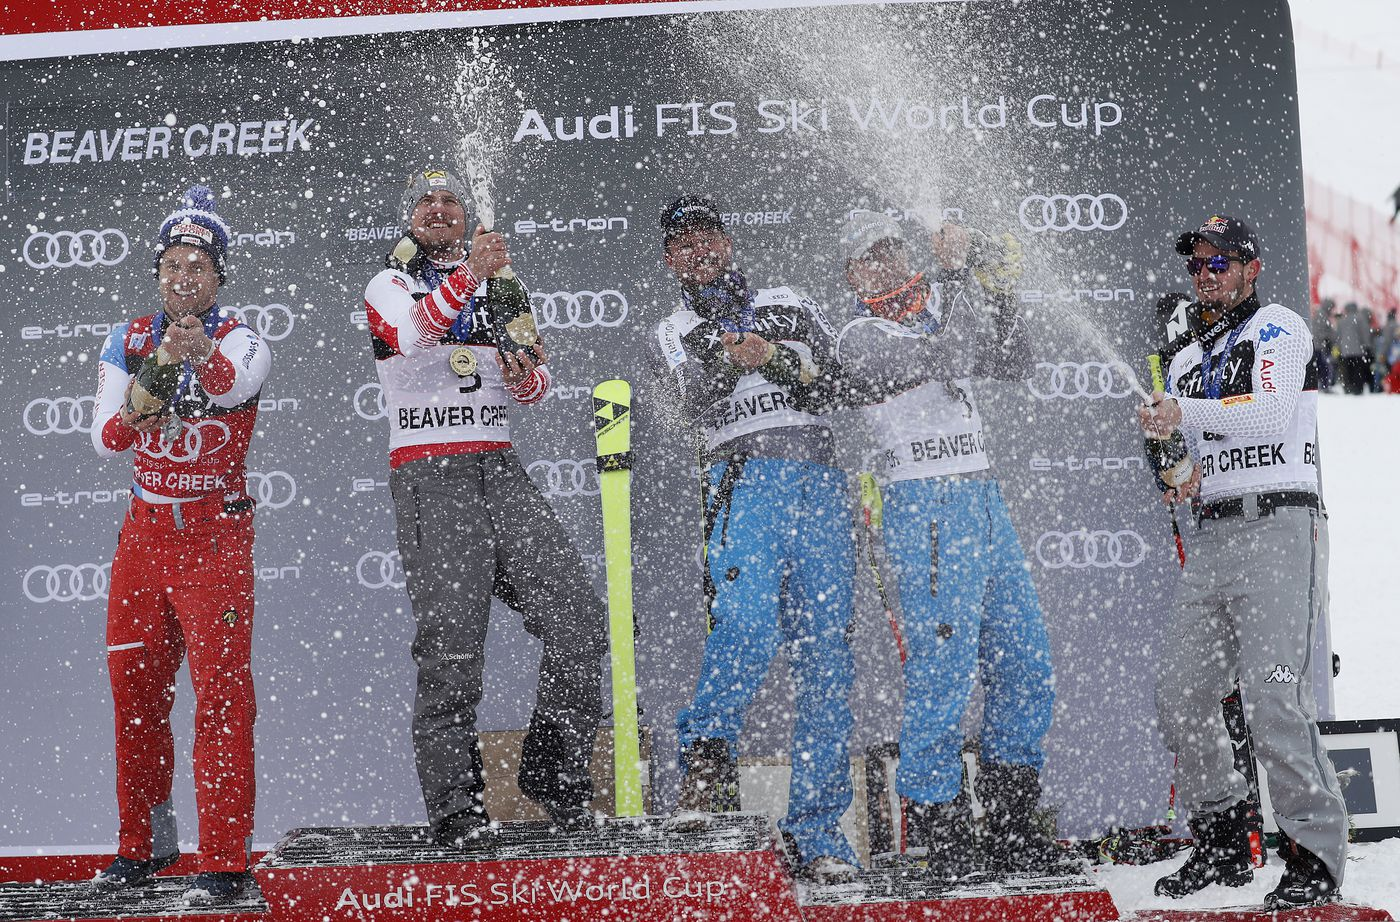 Franz takes super-G race at Beaver Creek on snowy, foggy day